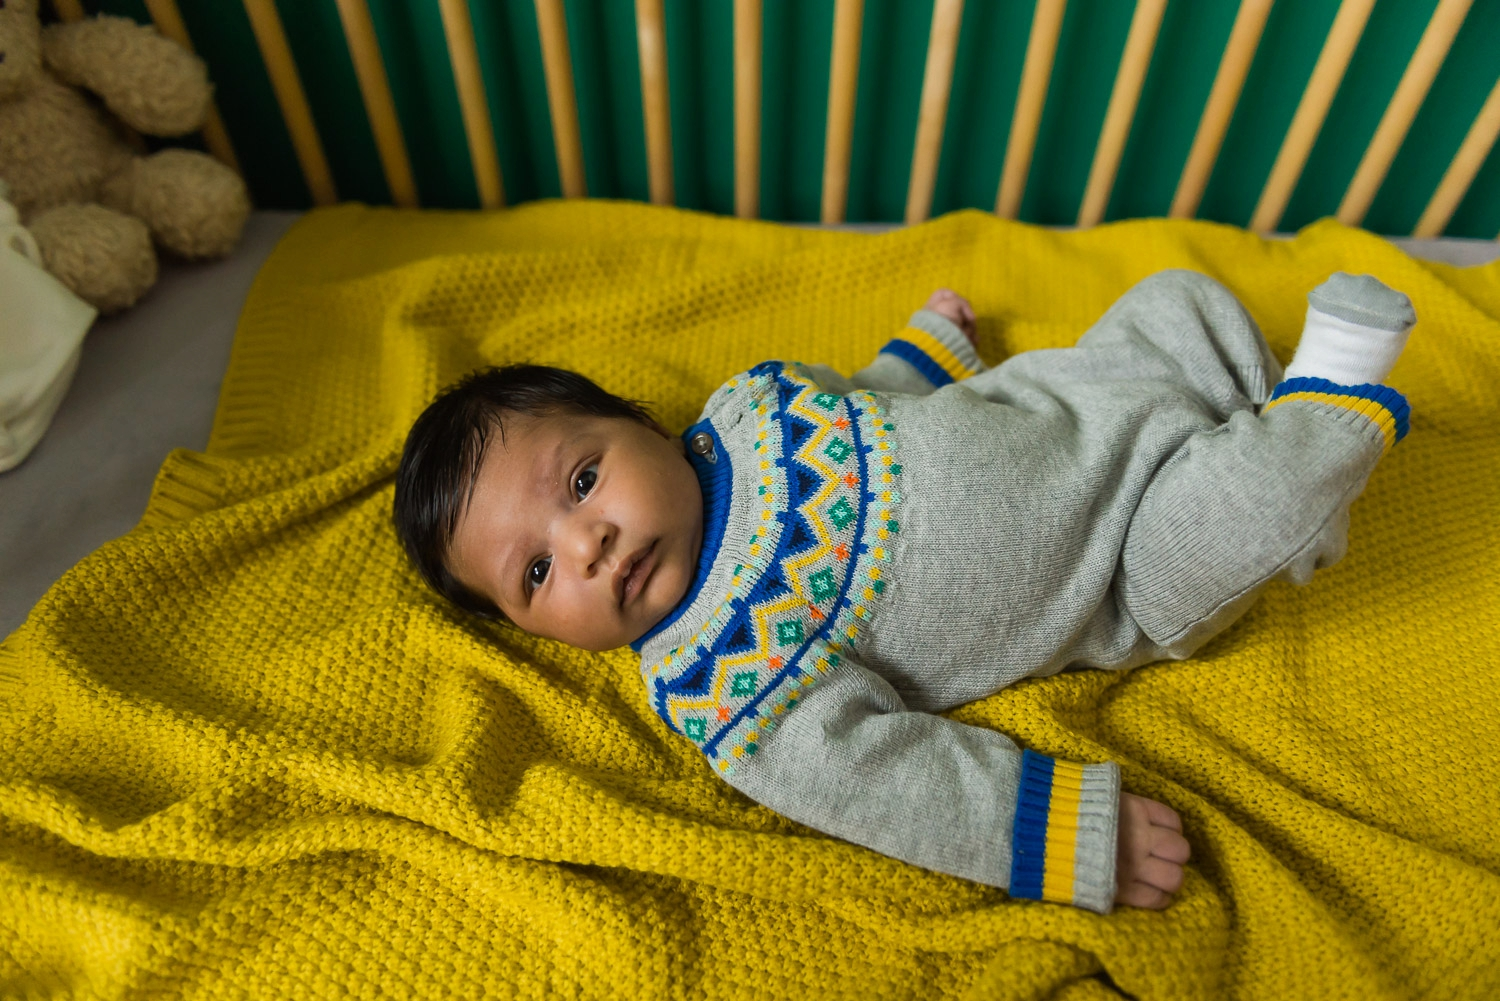 Baby in embroidered onesie laying on a yellow blanket